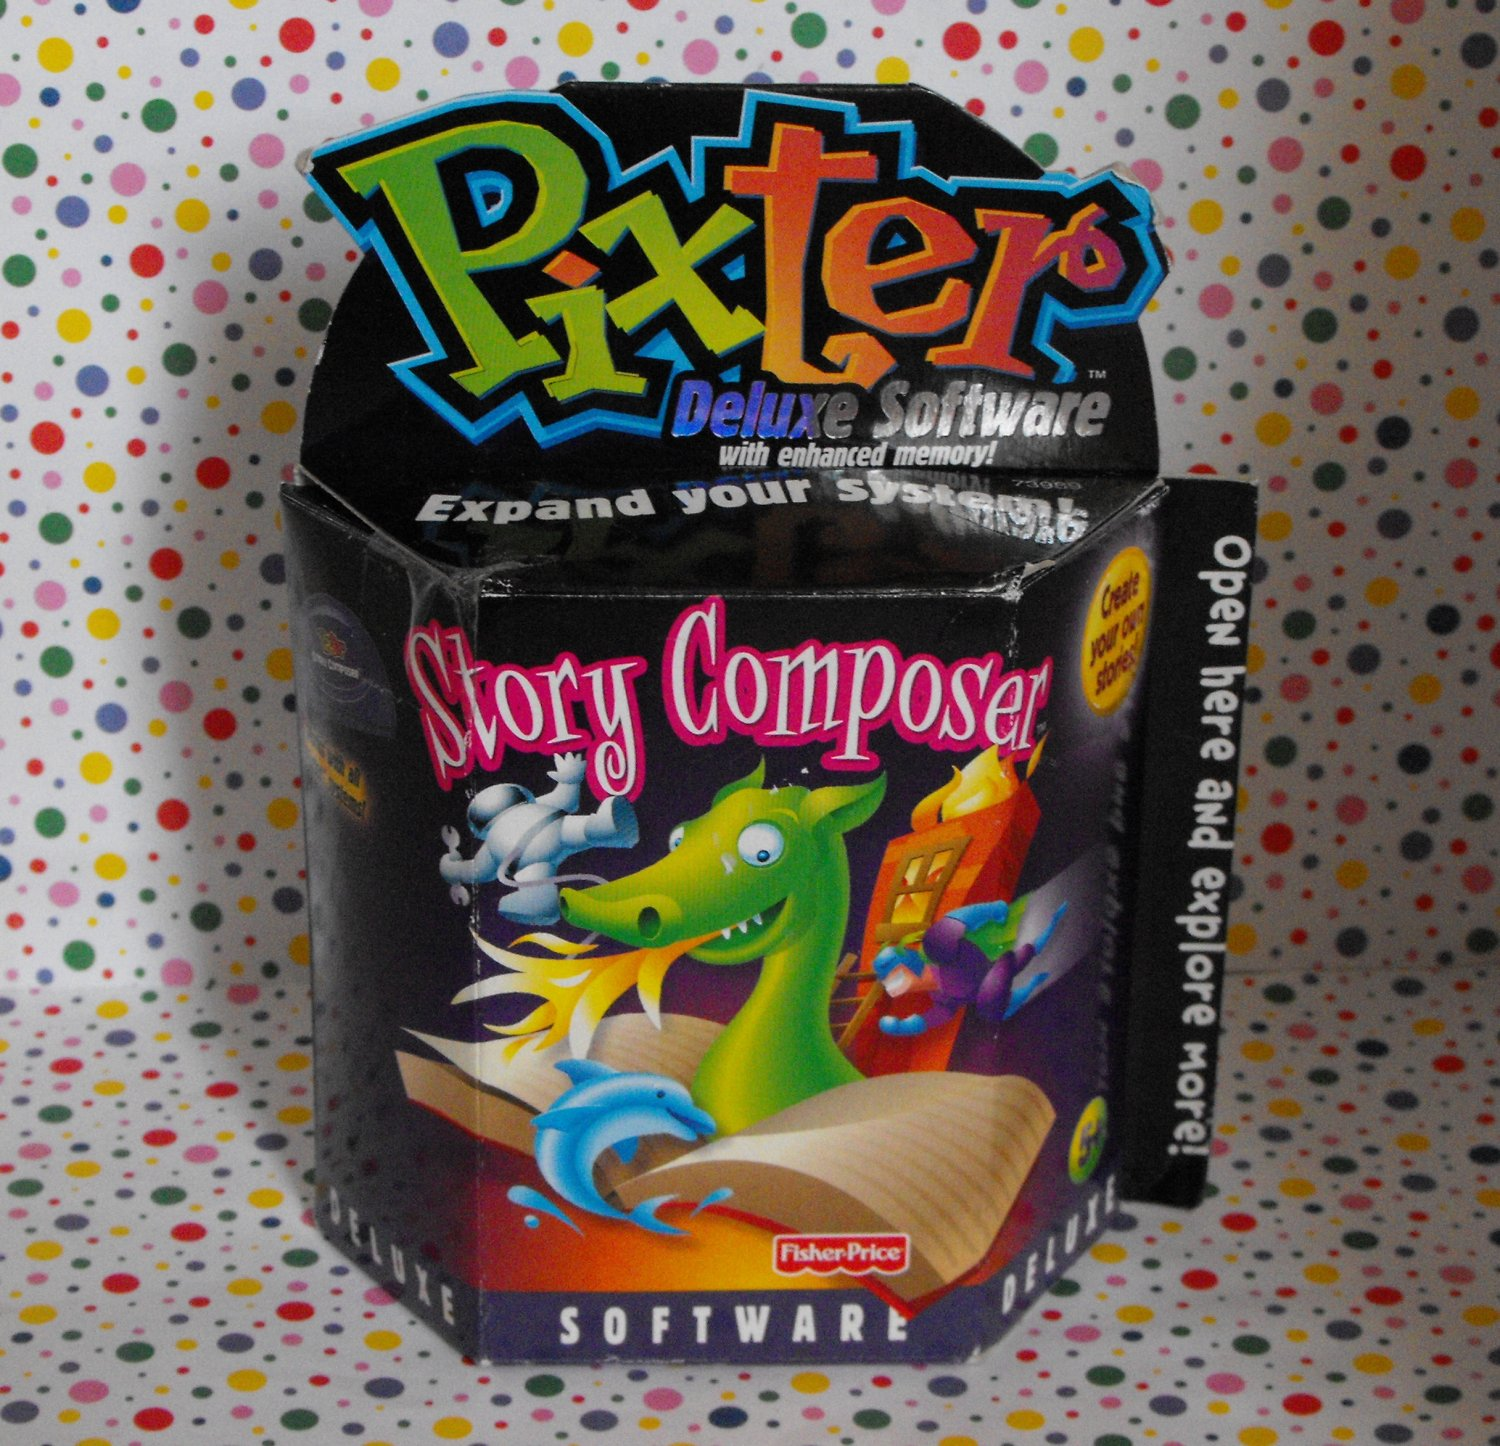 Fisher Price Pixter Handheld Story Composer Software Game